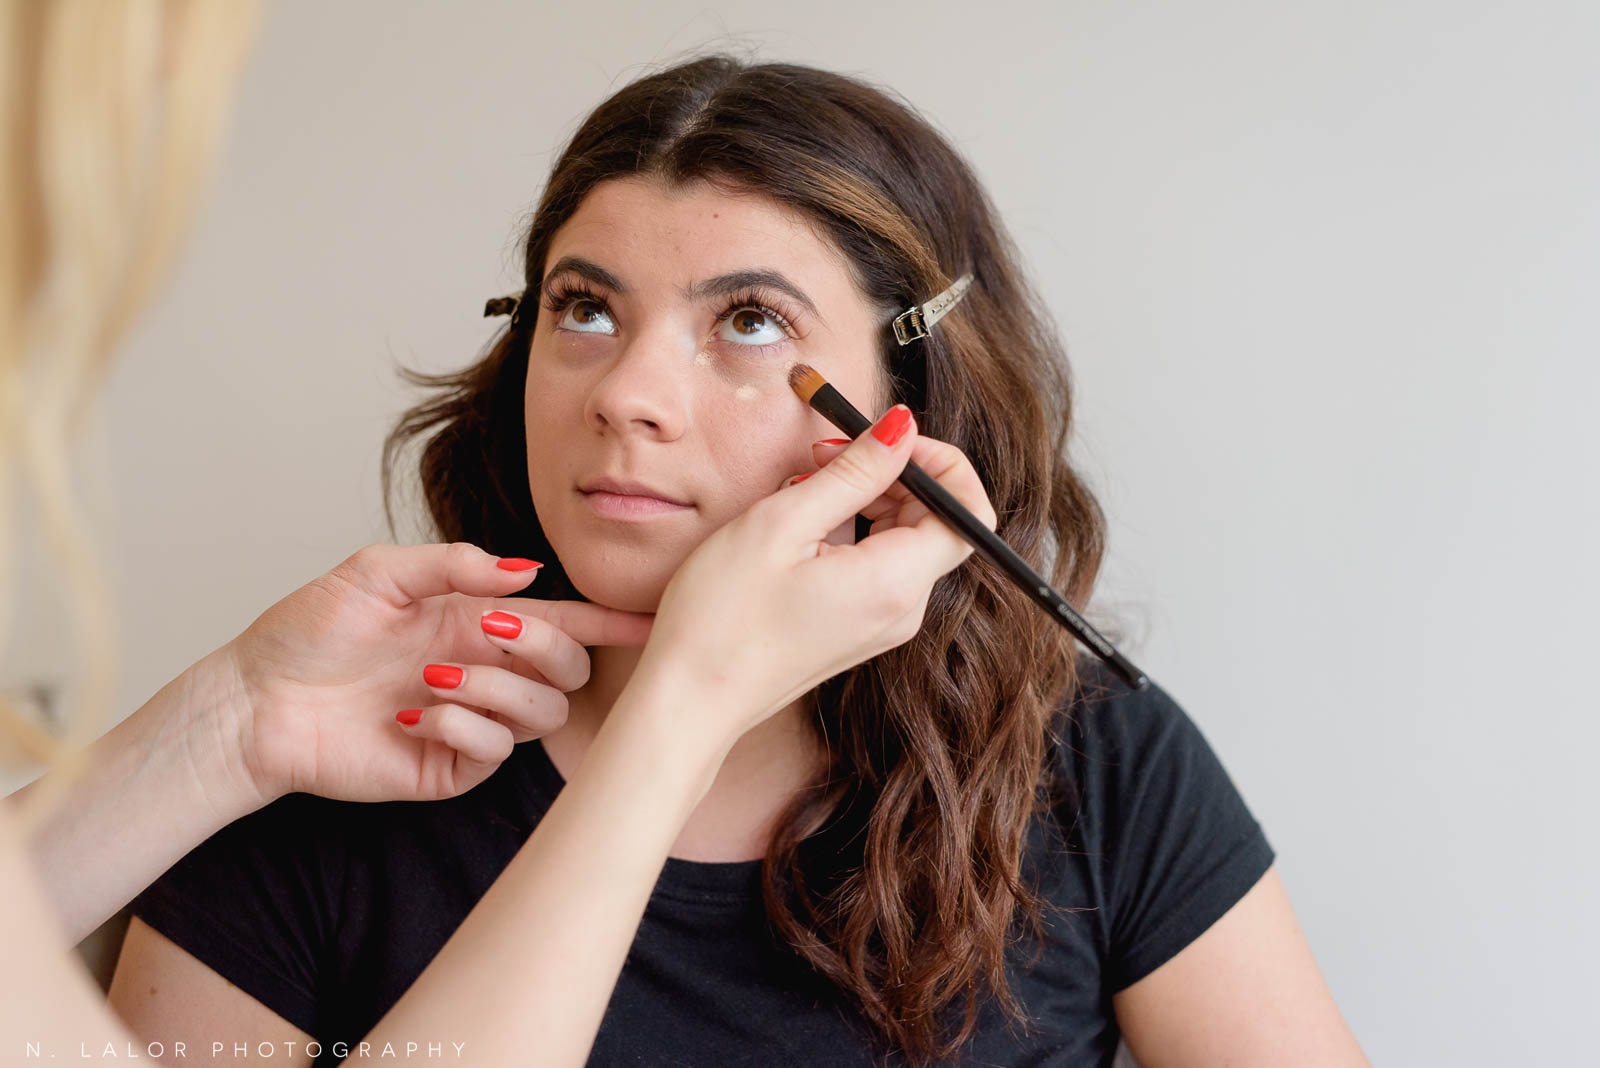 Applying under eye concealer. Photo by N. Lalor Photography, makeup tips by Haus of Pretty of Westport CT.